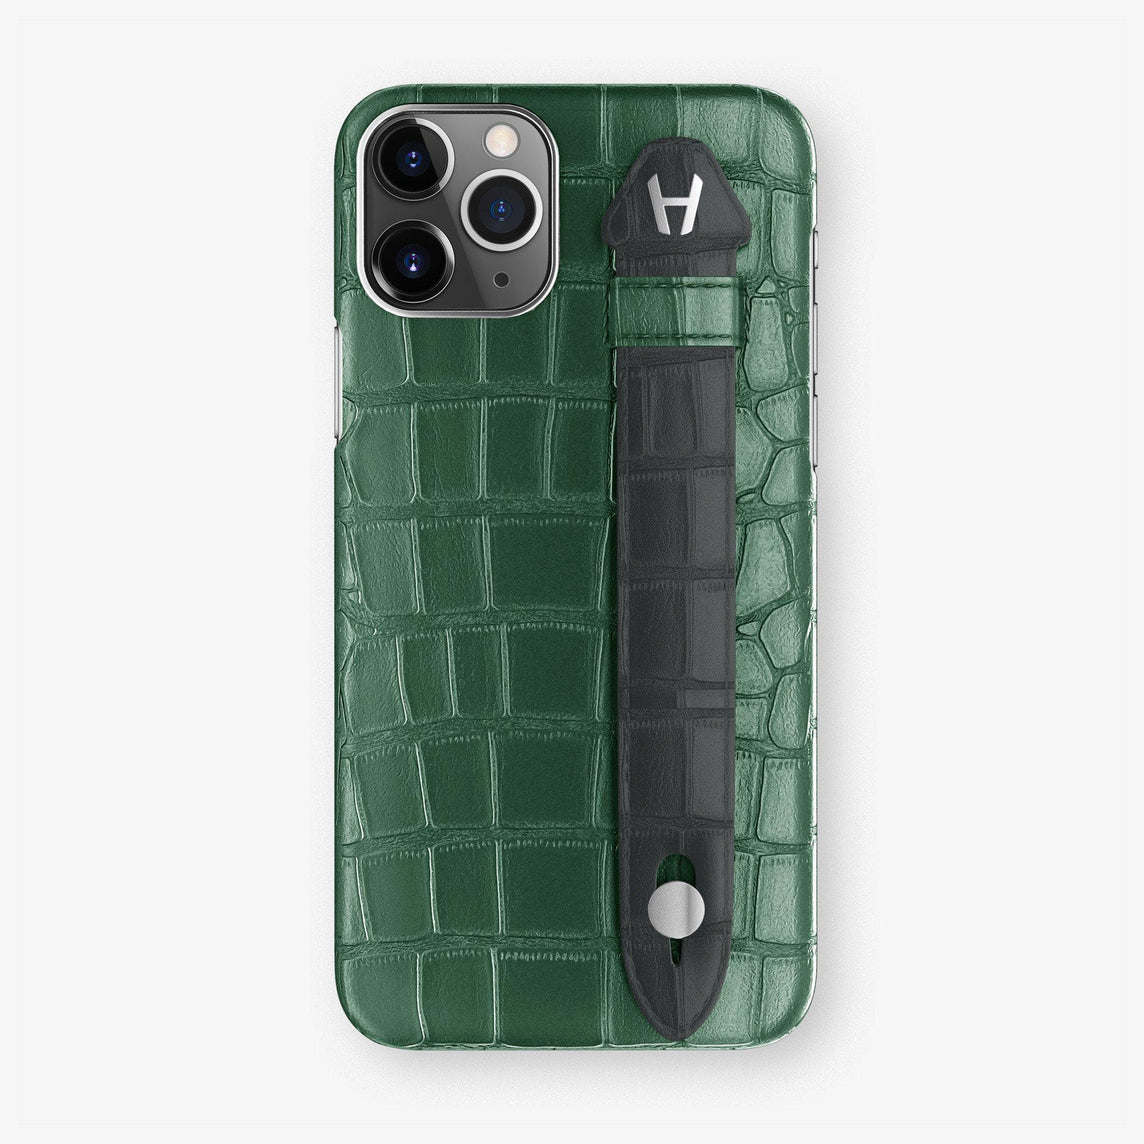 Alligator Finger Case iPhone 11 | Green/Grey Anthracite - Stainless Steel